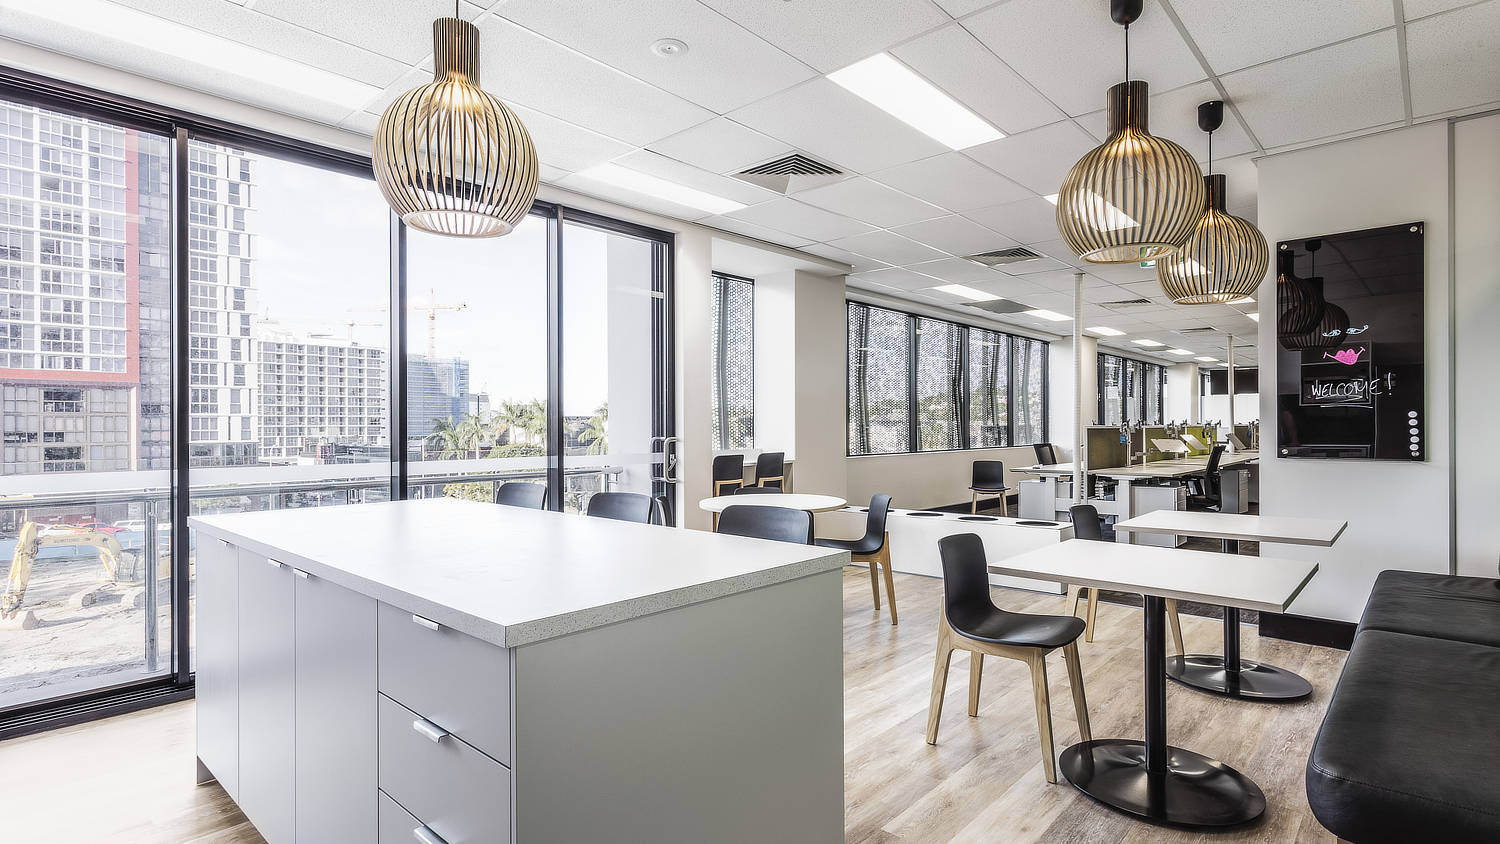 Do you need finance for your next commercial fitout?